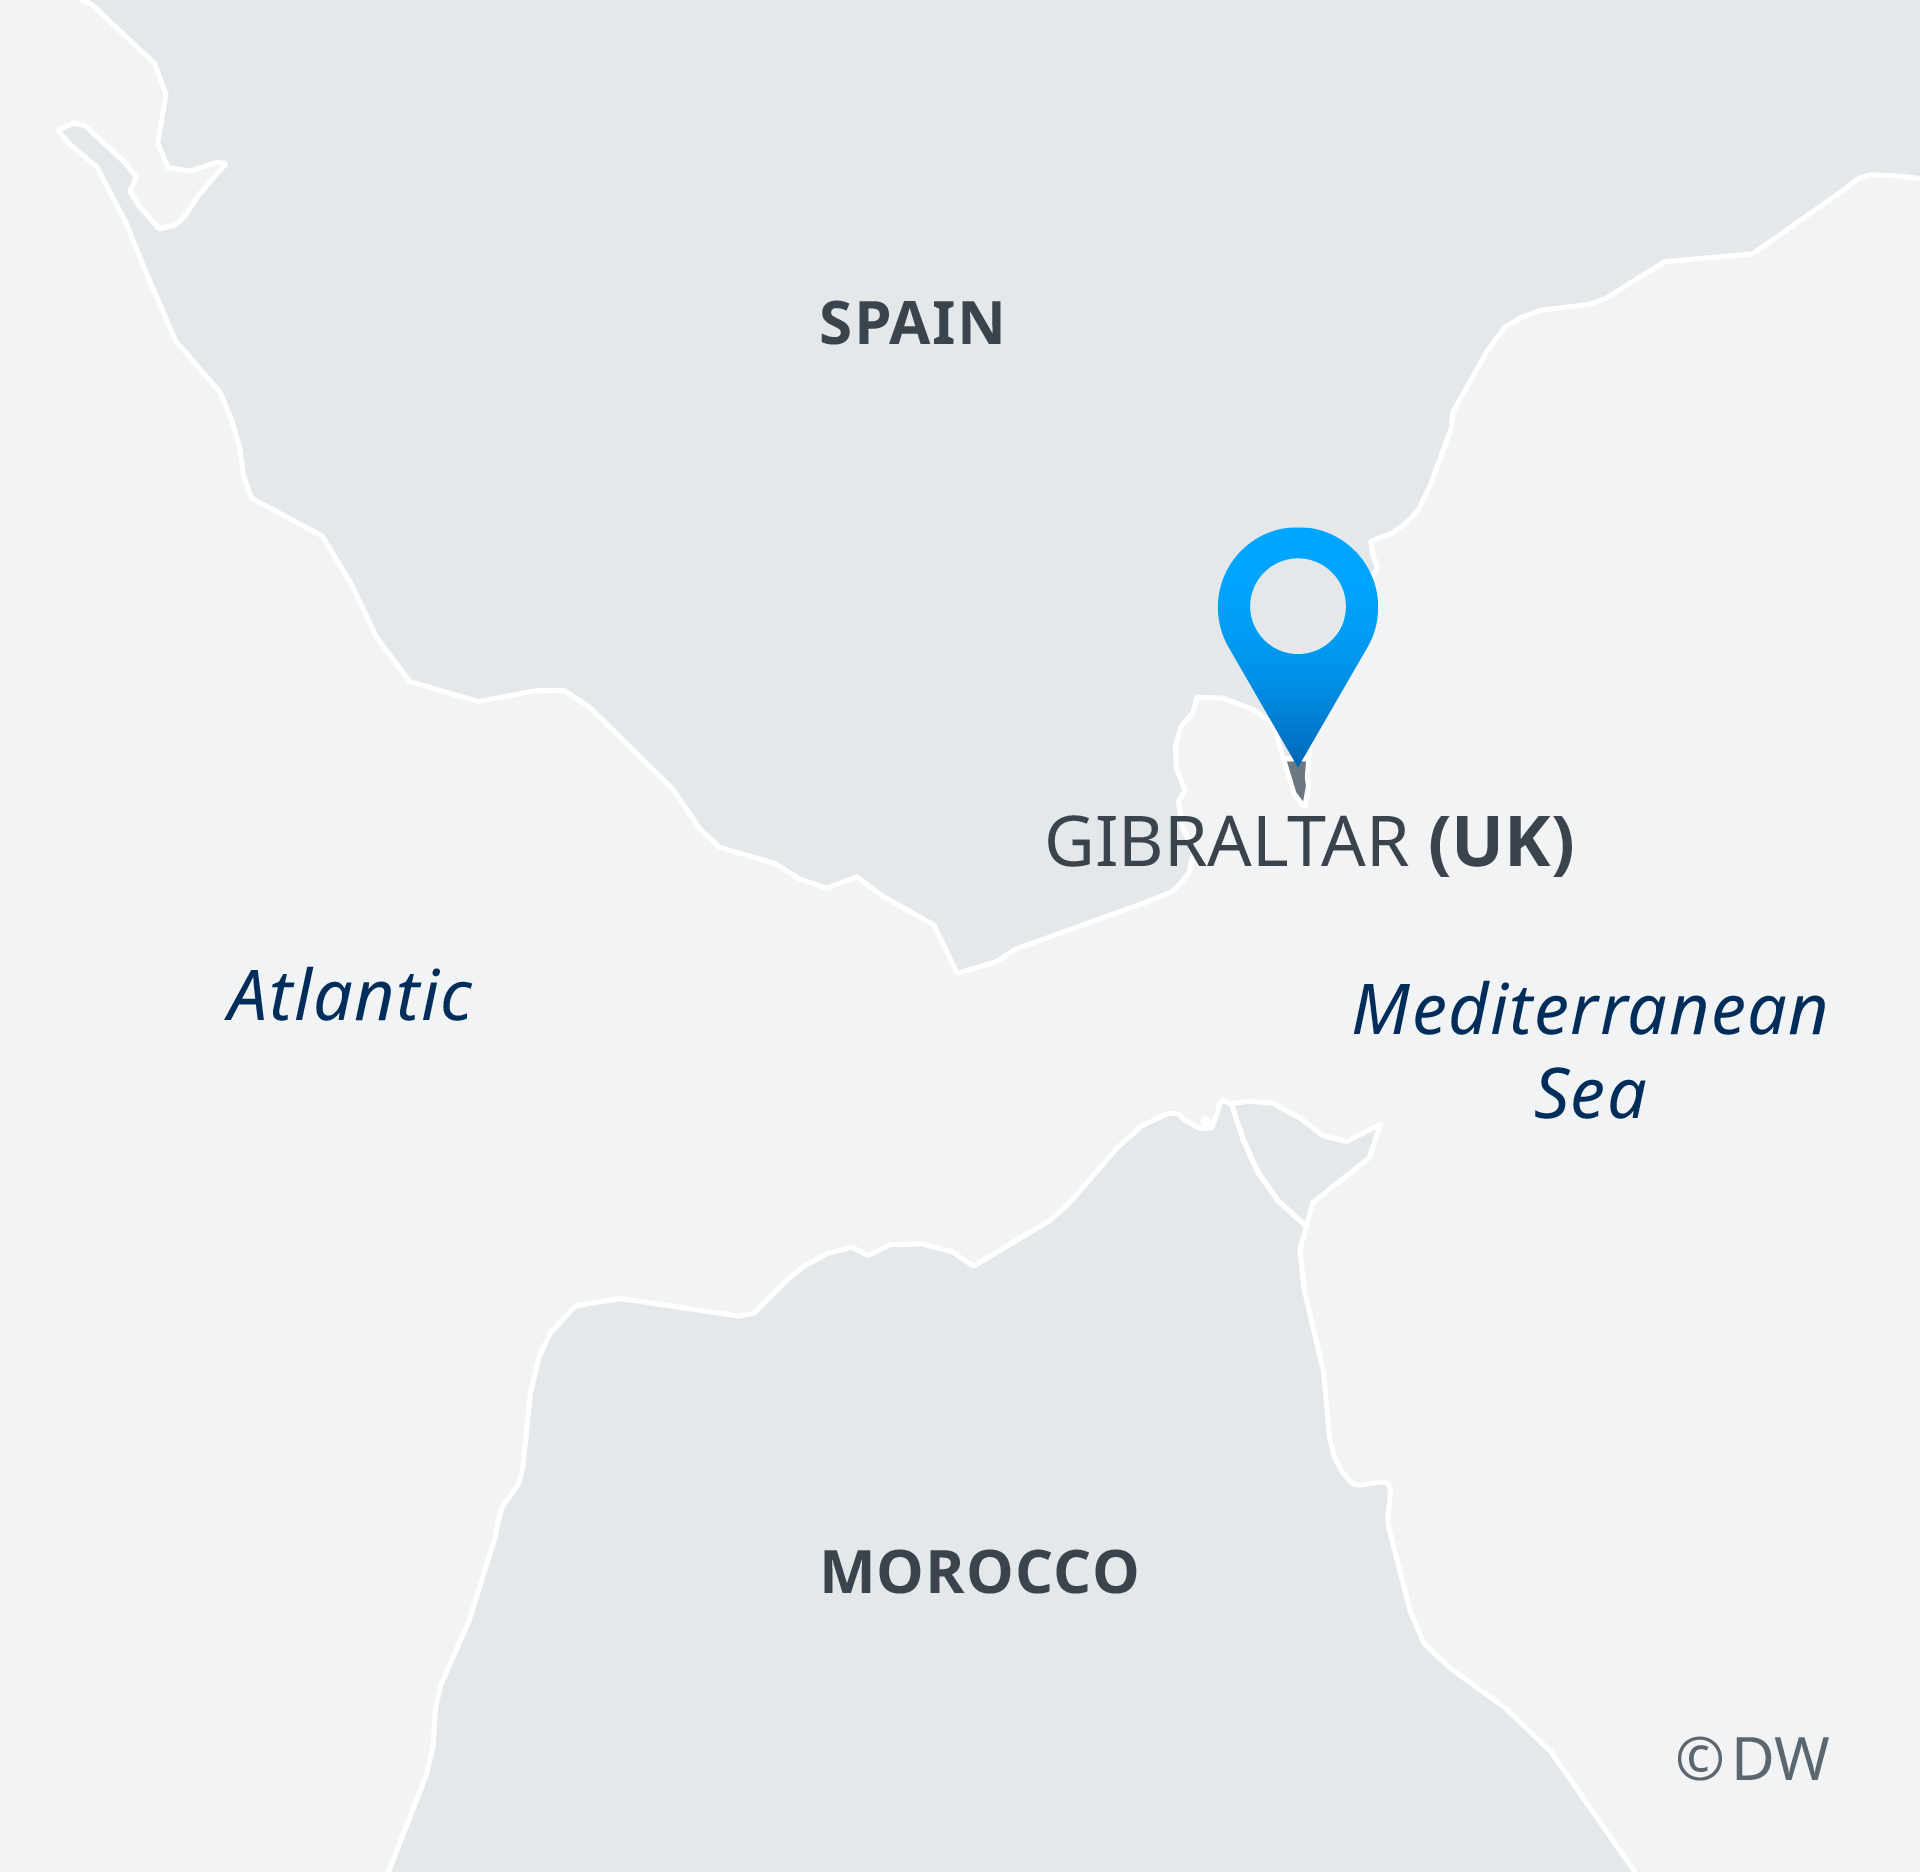 Map Of Spain Gibraltar And Morocco.Spain Threatens To Vote No On Brexit Deal Over Gibraltar News Dw